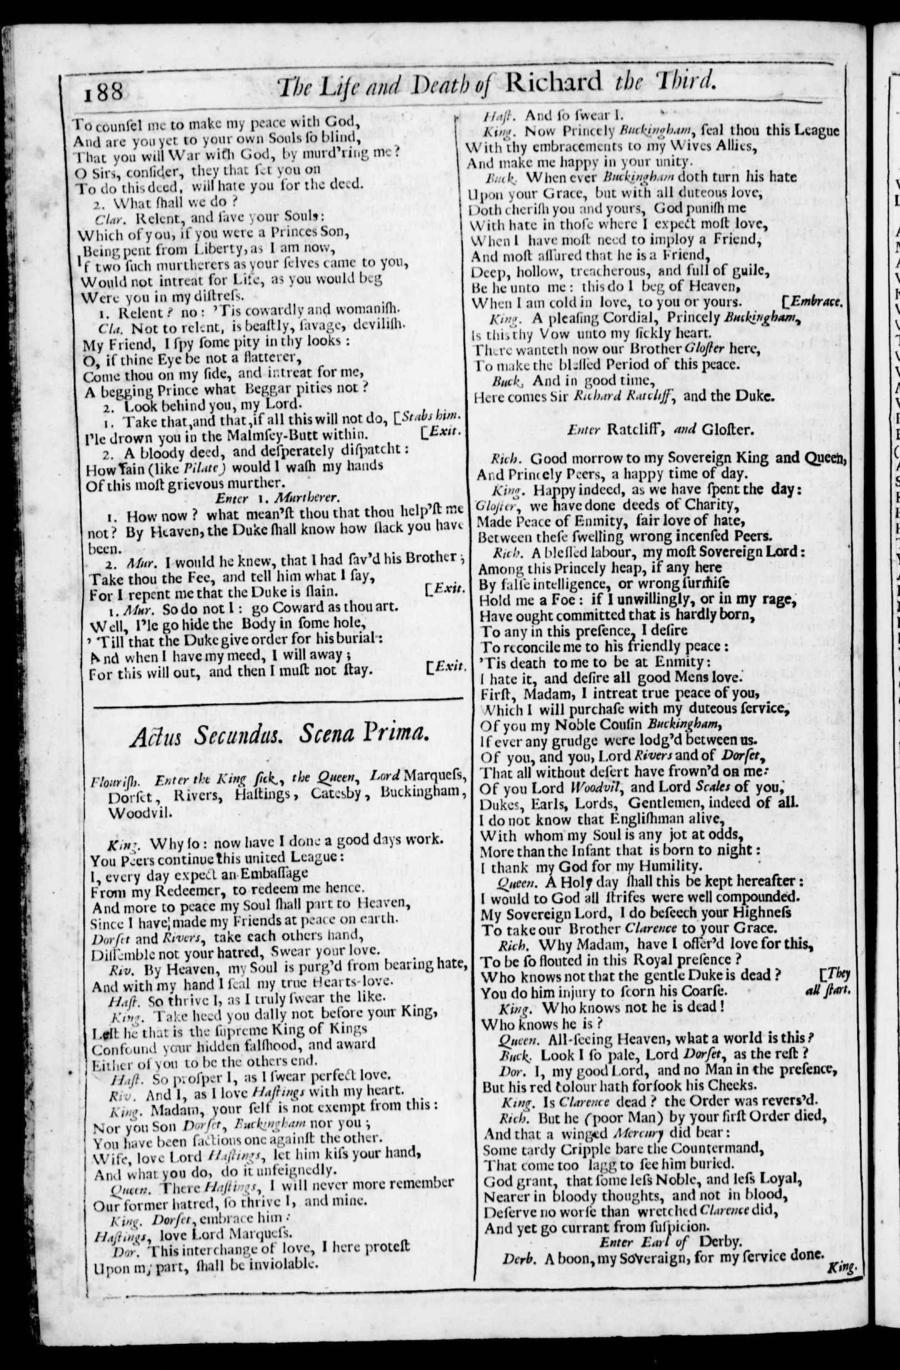 Image of Fourth Folio (New South Wales), page 469